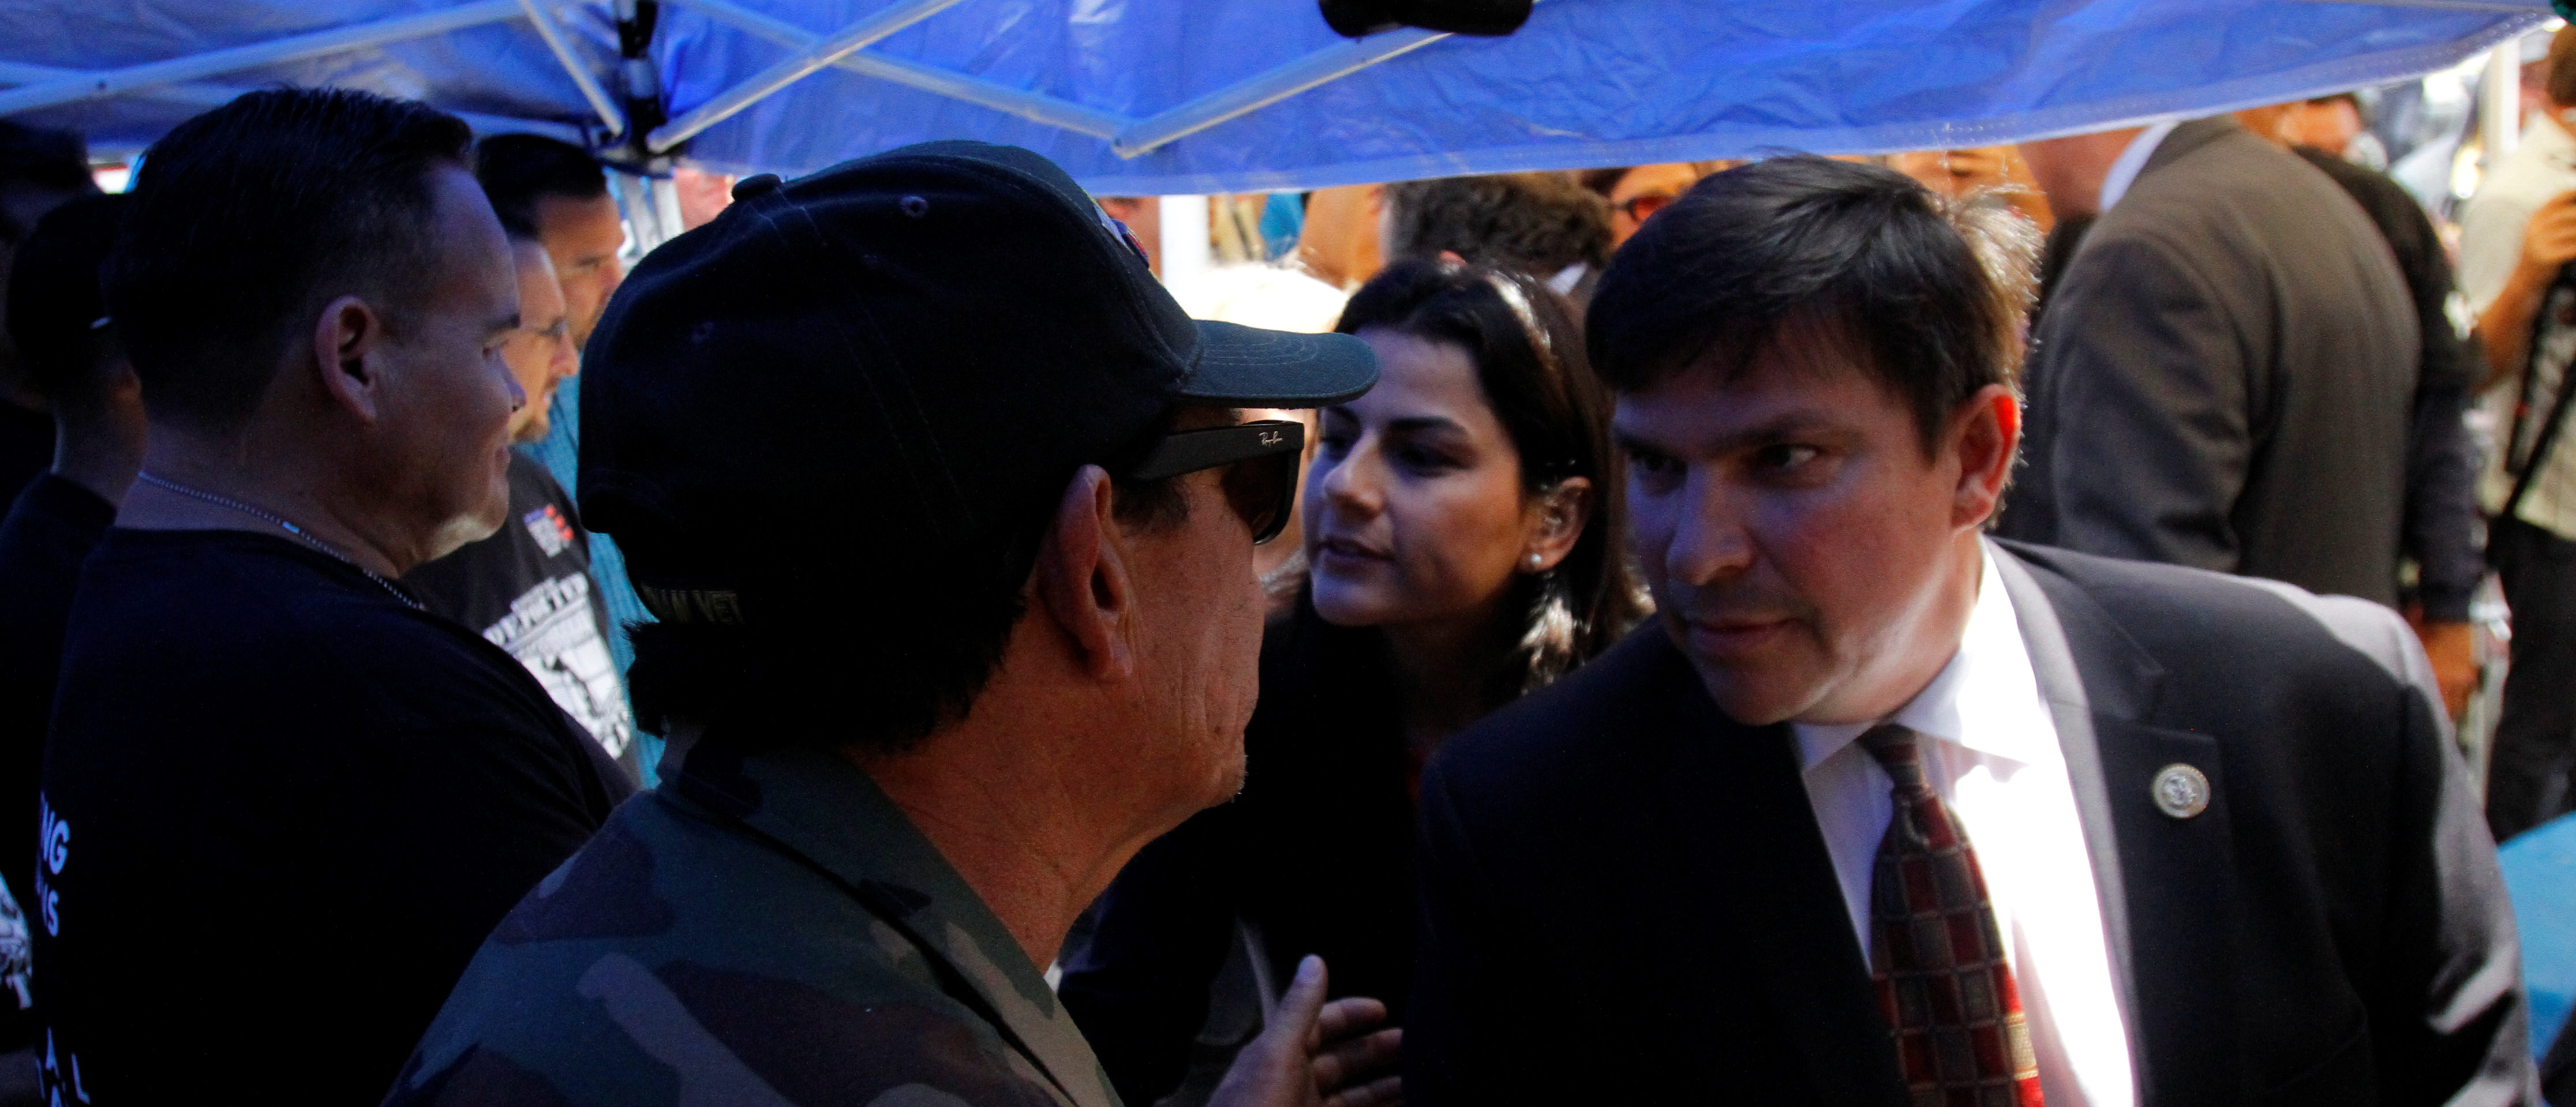 U.S. congressmen Vicente Gonzalez speaks with a Mexican veteran who have been deported from the United States, during a meeting outside the Deported Veterans Support House, in Tijuana